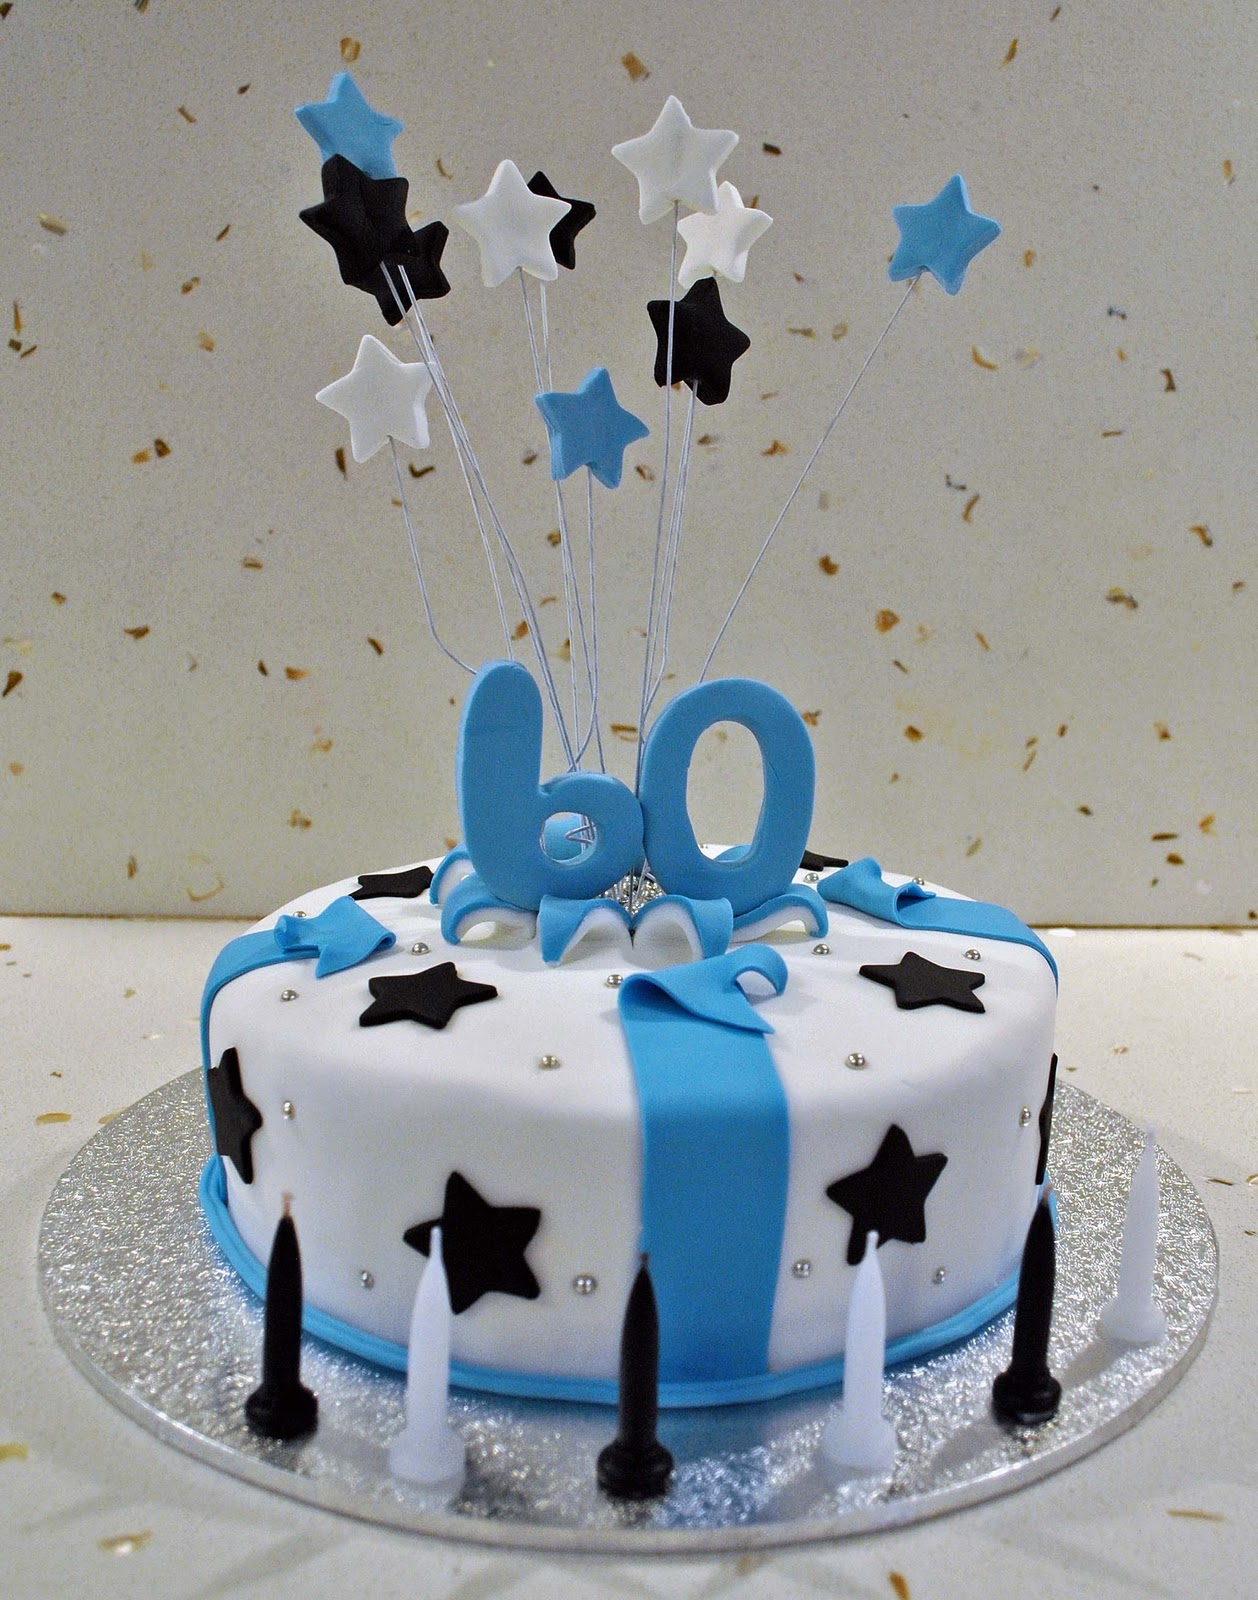 Taylor made baking cakes cakes and more cake - Birthday decorations for mens th ...